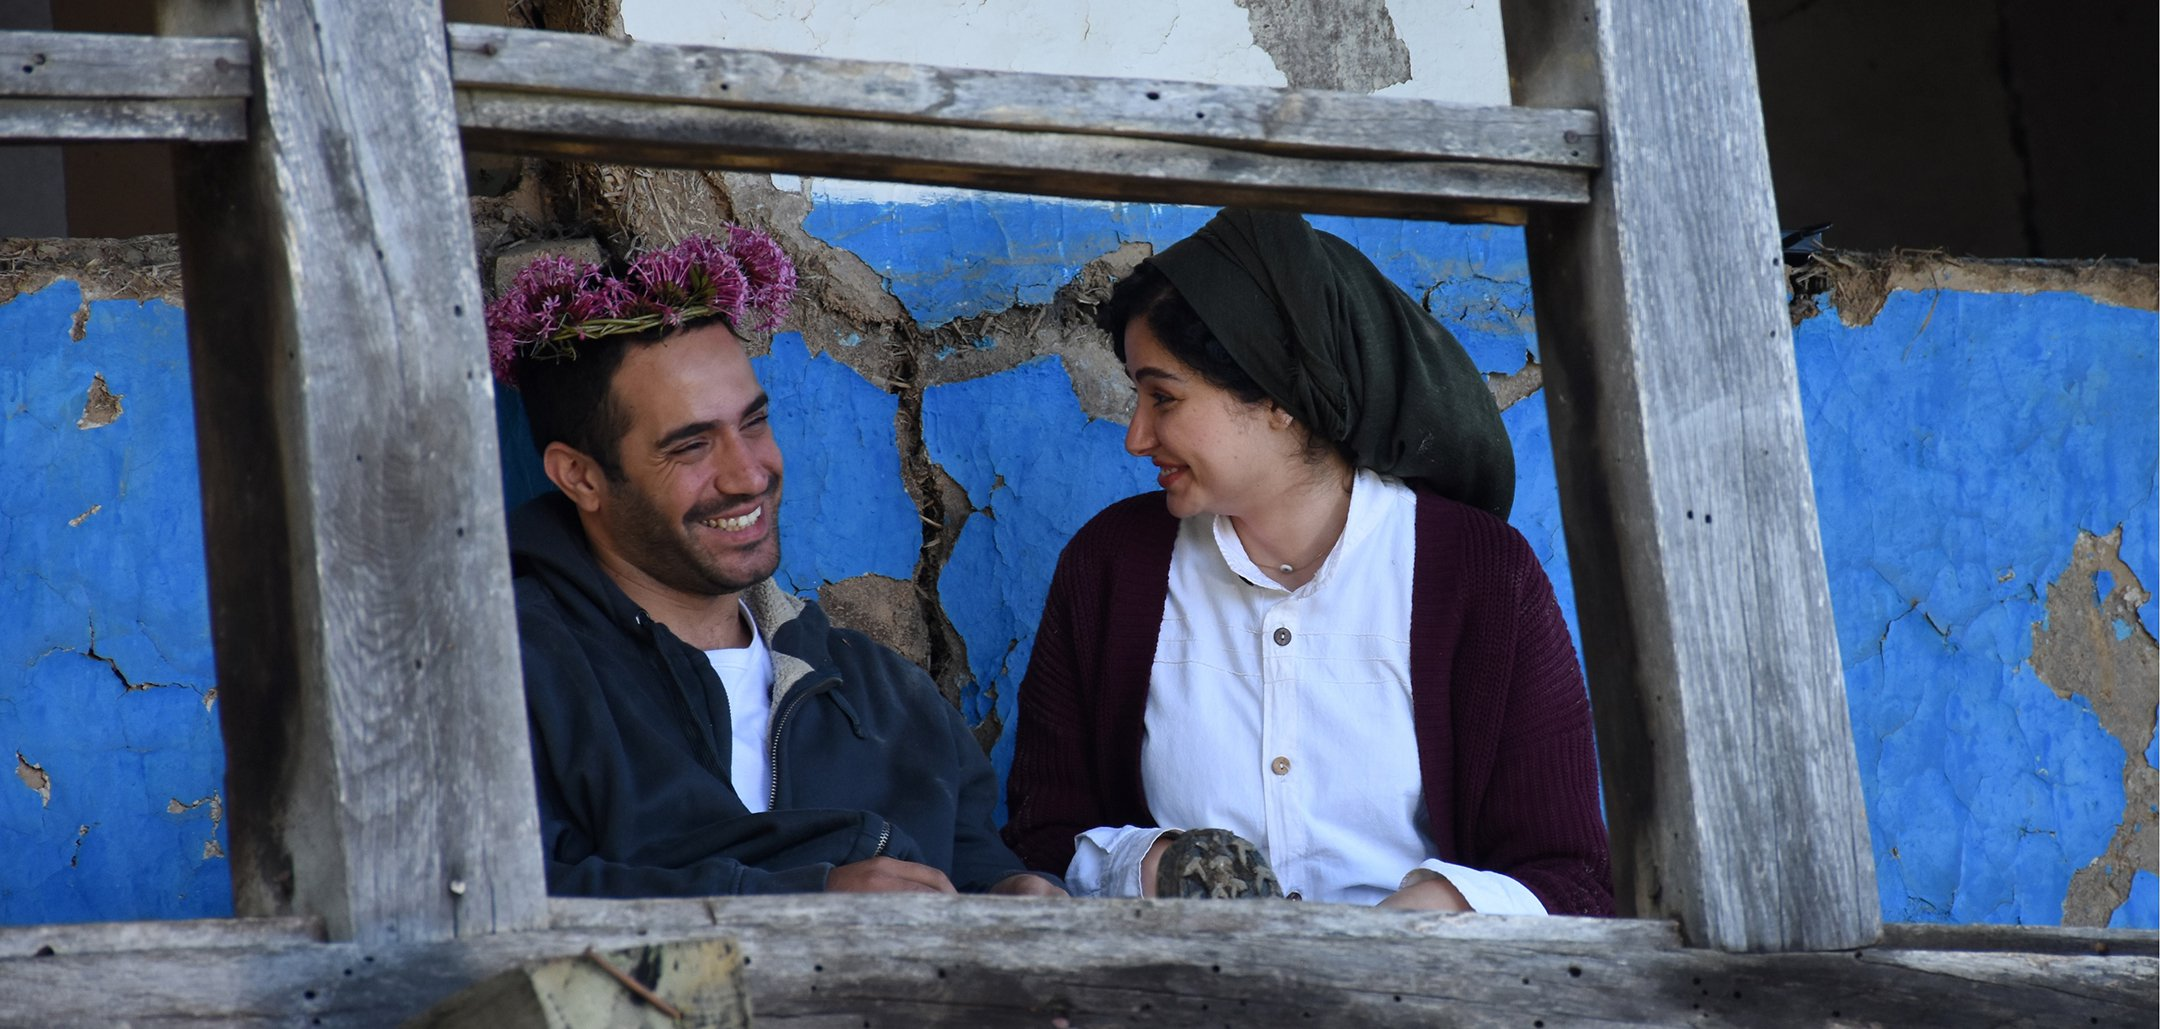 Mohammad Valizadegan and Baran Rasoulof smiling as Mohammad wears a flower crown in a still from 'There Is No Evil' (2020)